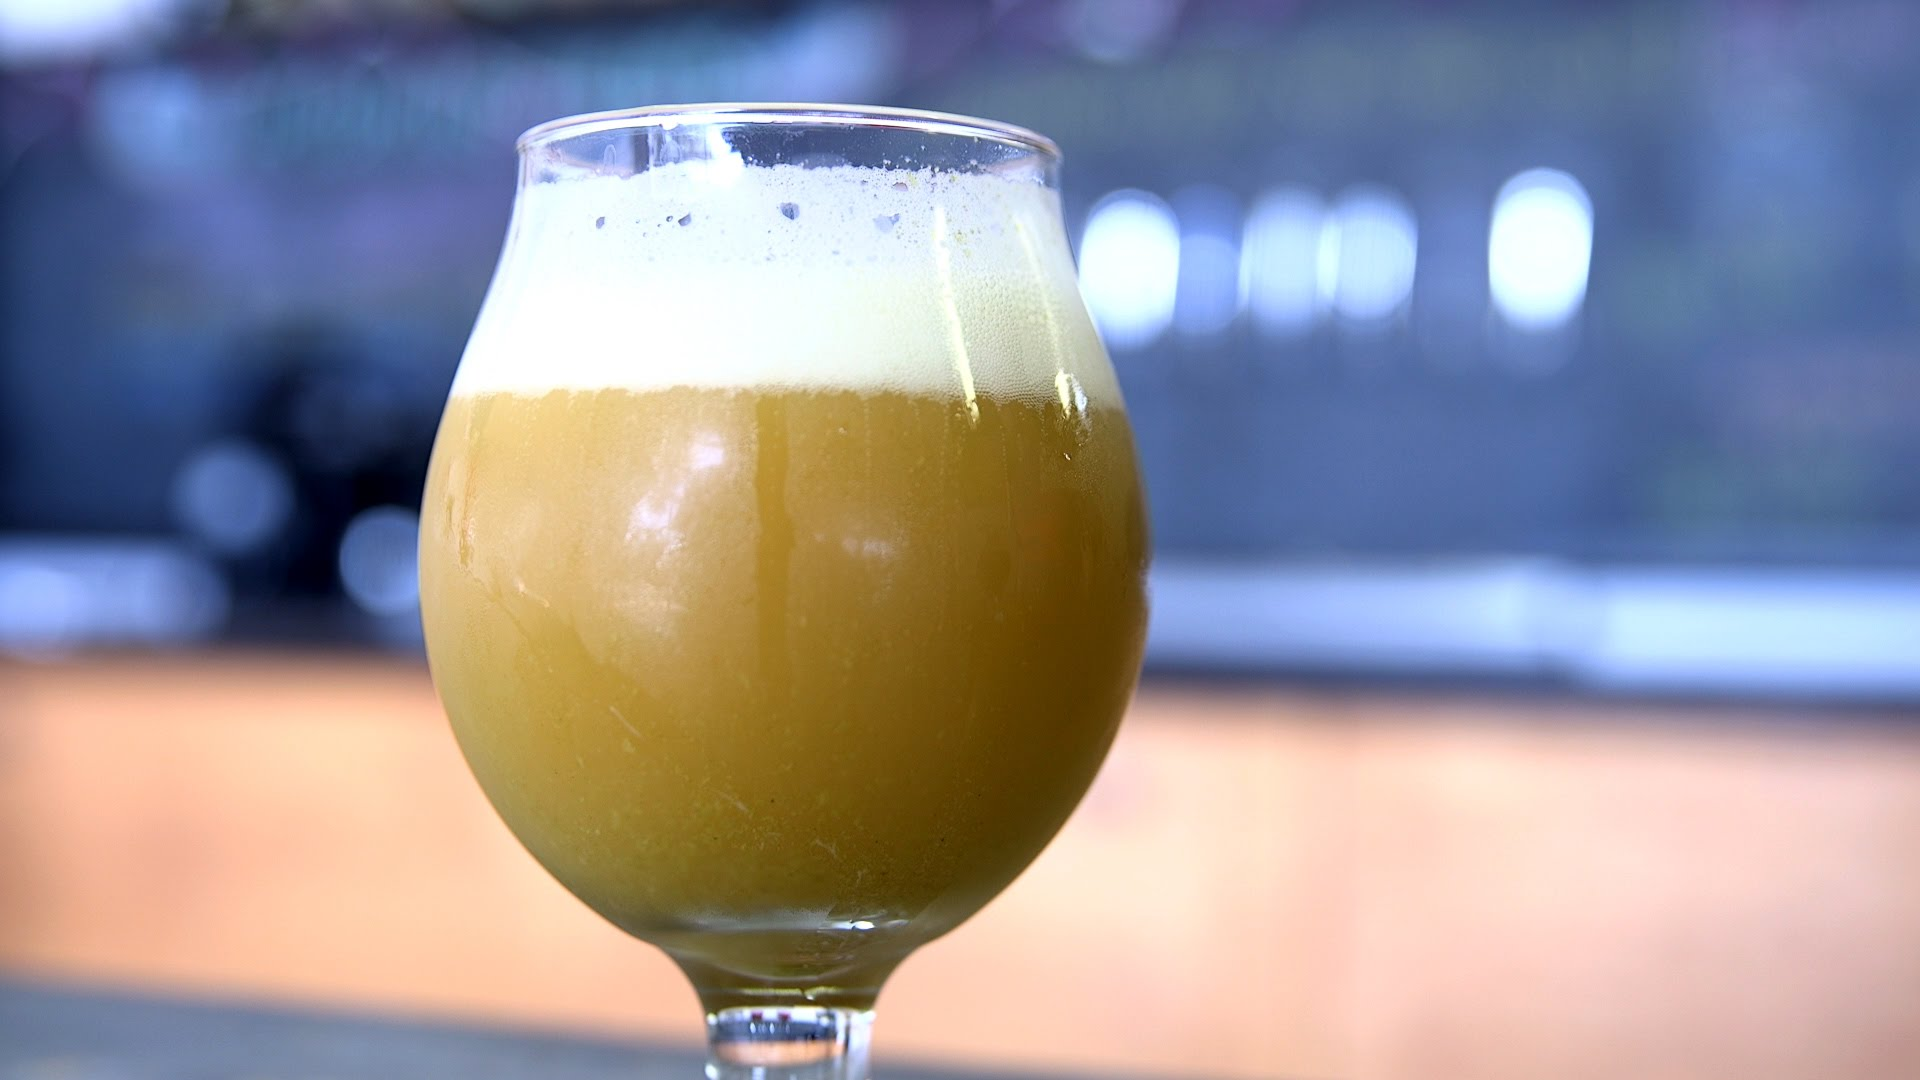 Aslin Beer Company in Herndon, VA released a AVIPA, a Quintuple IPA.